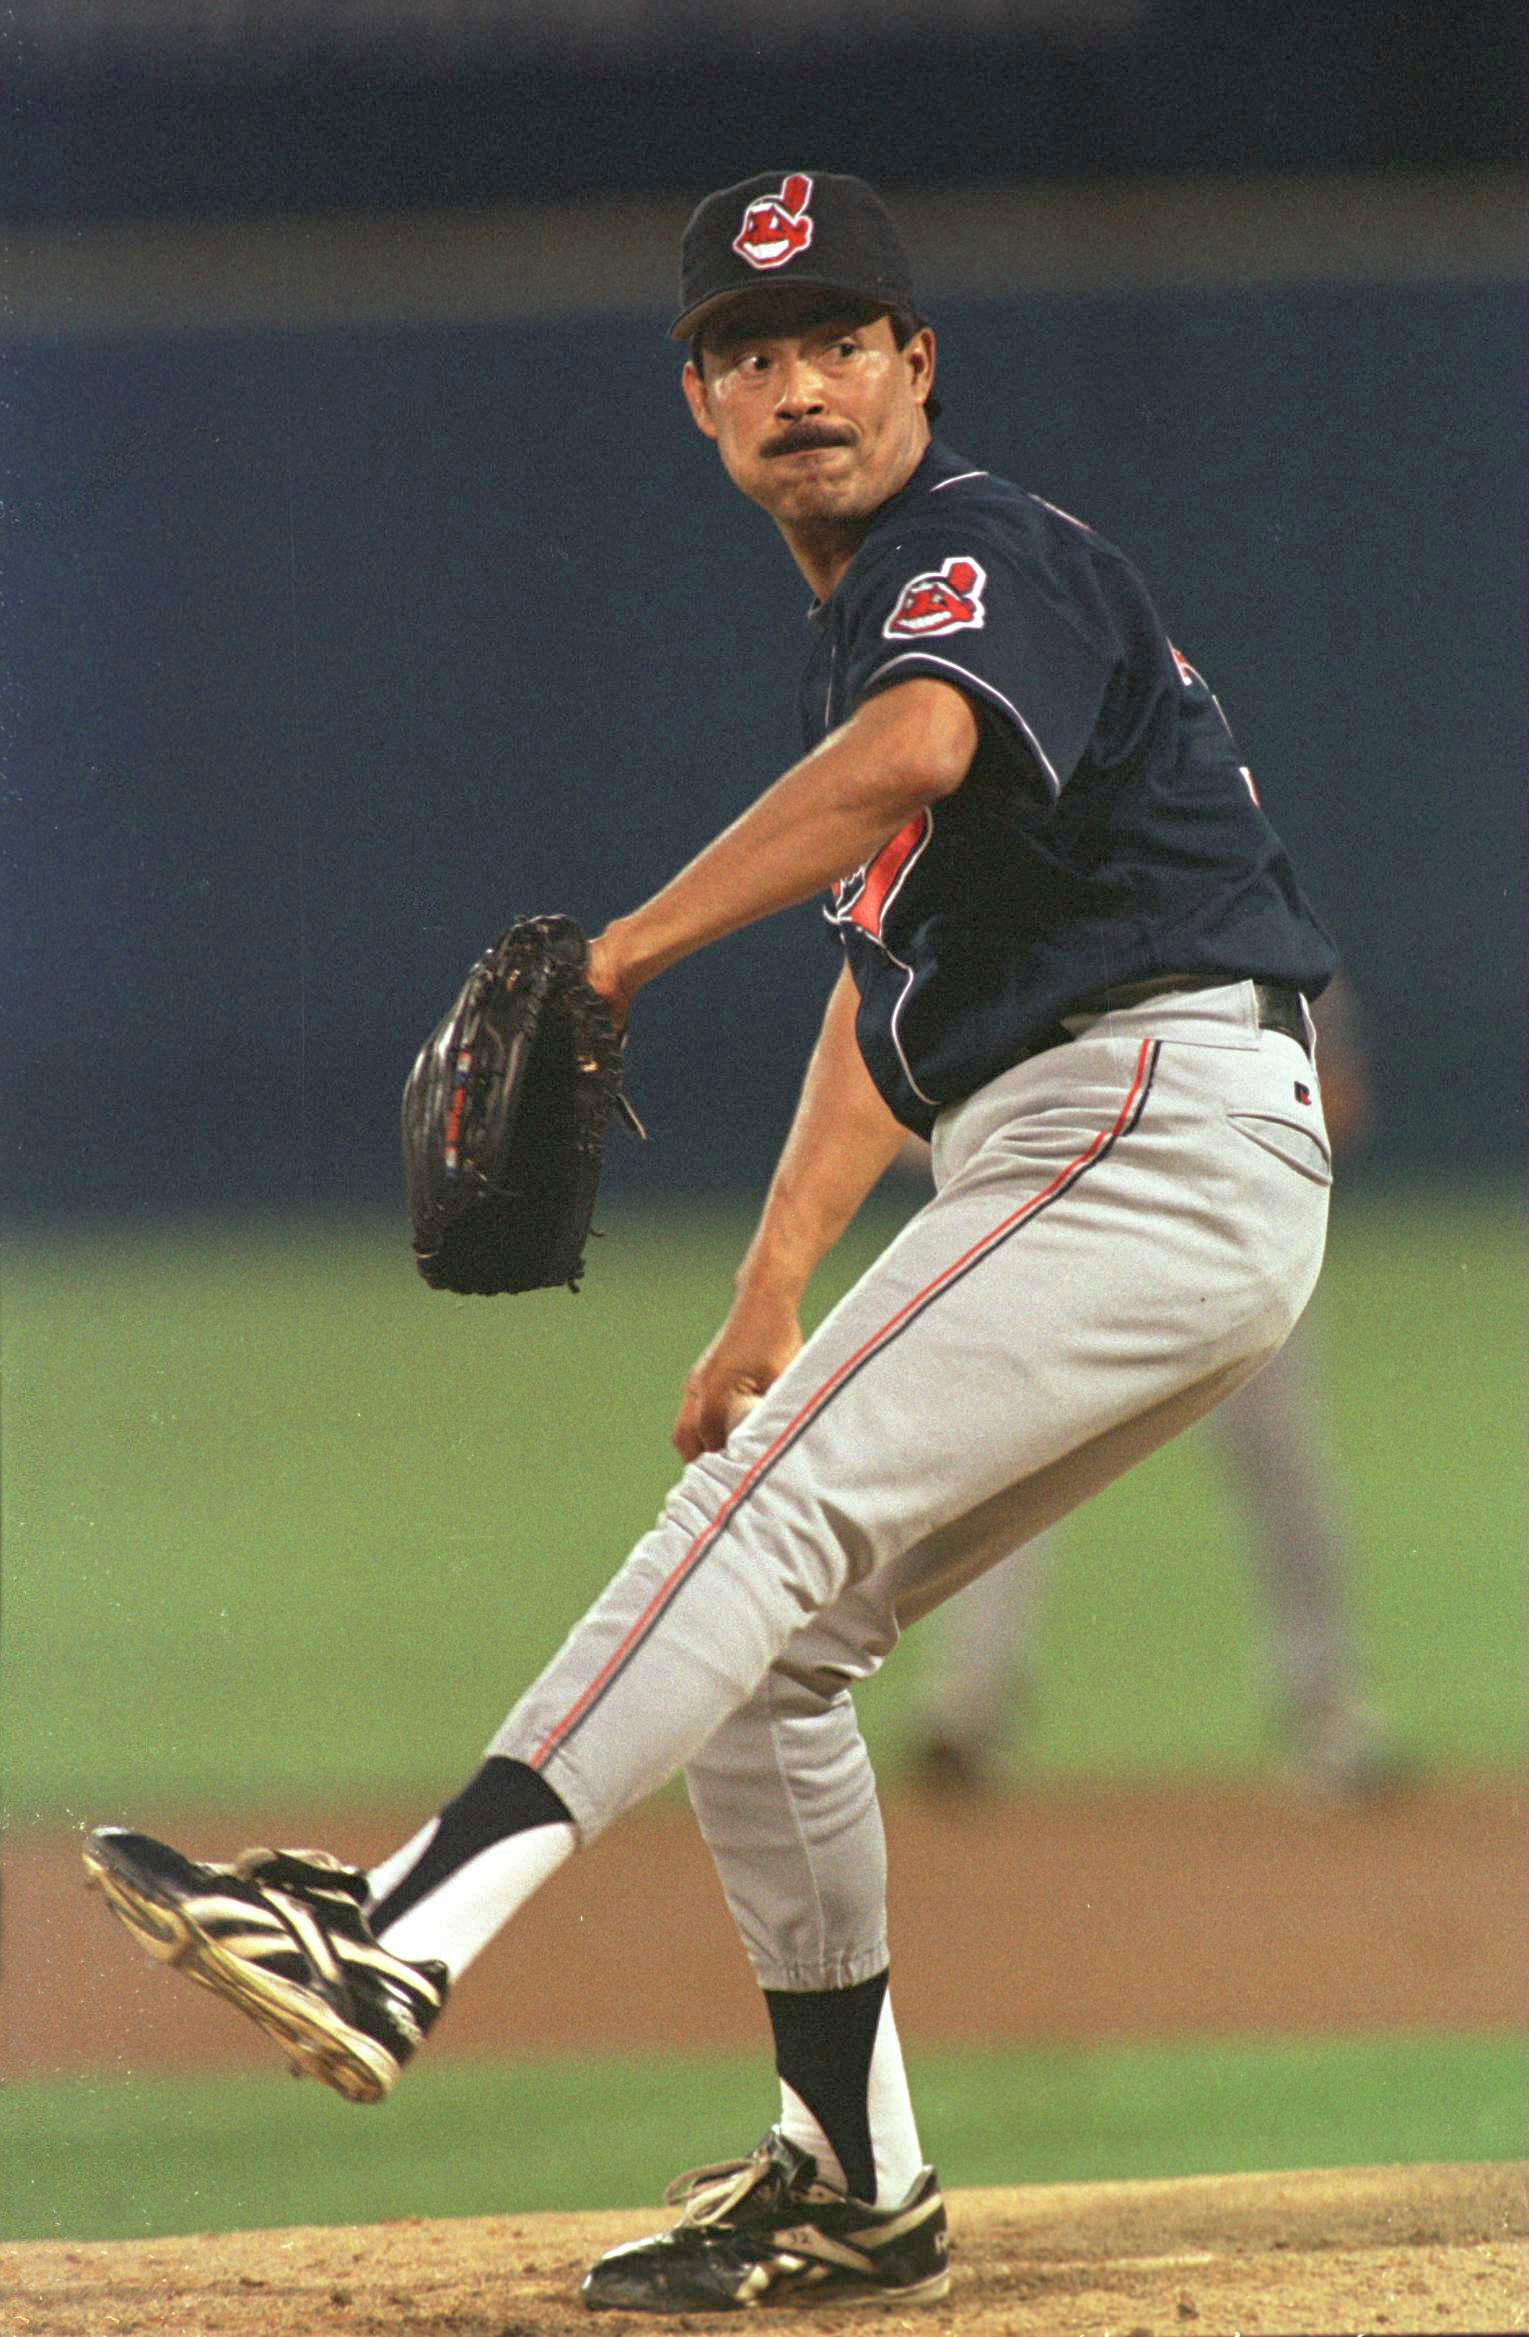 22 Oct 1995:  Pitcher Dennis Martinez of the Cleveland Indians focuses in on home plate as he begins his delivery during the first inning of the Indians game two match up against the Atlanta Braves in the 1995 World Series Championships at Fulton CountySt